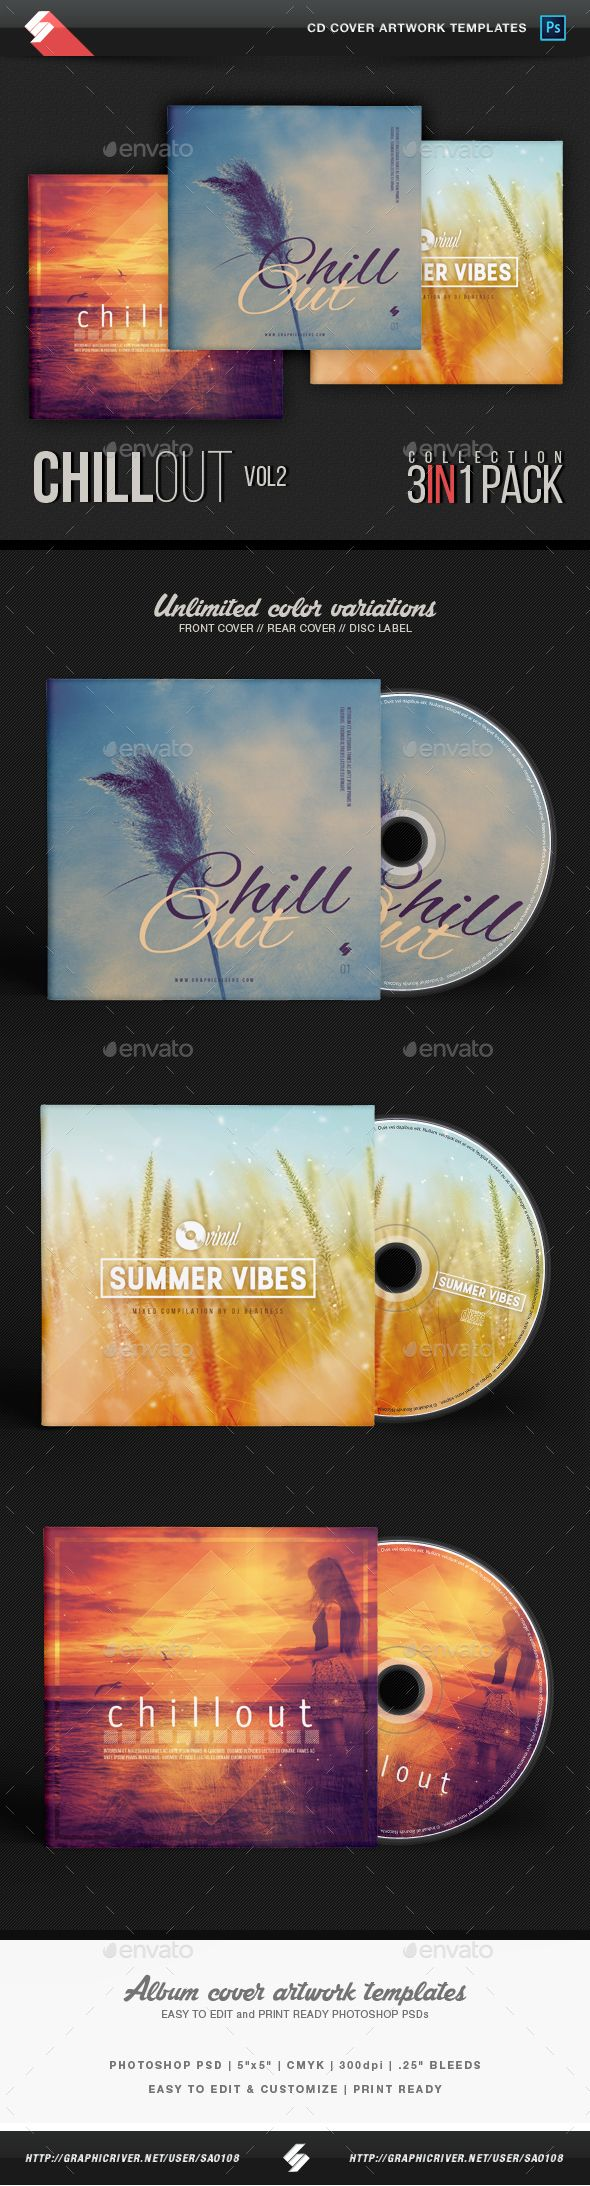 Chillout Trilogy vol.2 - CD Cover Templates Bundle PSD. Download here: https://graphicriver.net/item/chillout-trilogy-vol2-cd-cover-templates-bundle/17324801?ref=ksioks